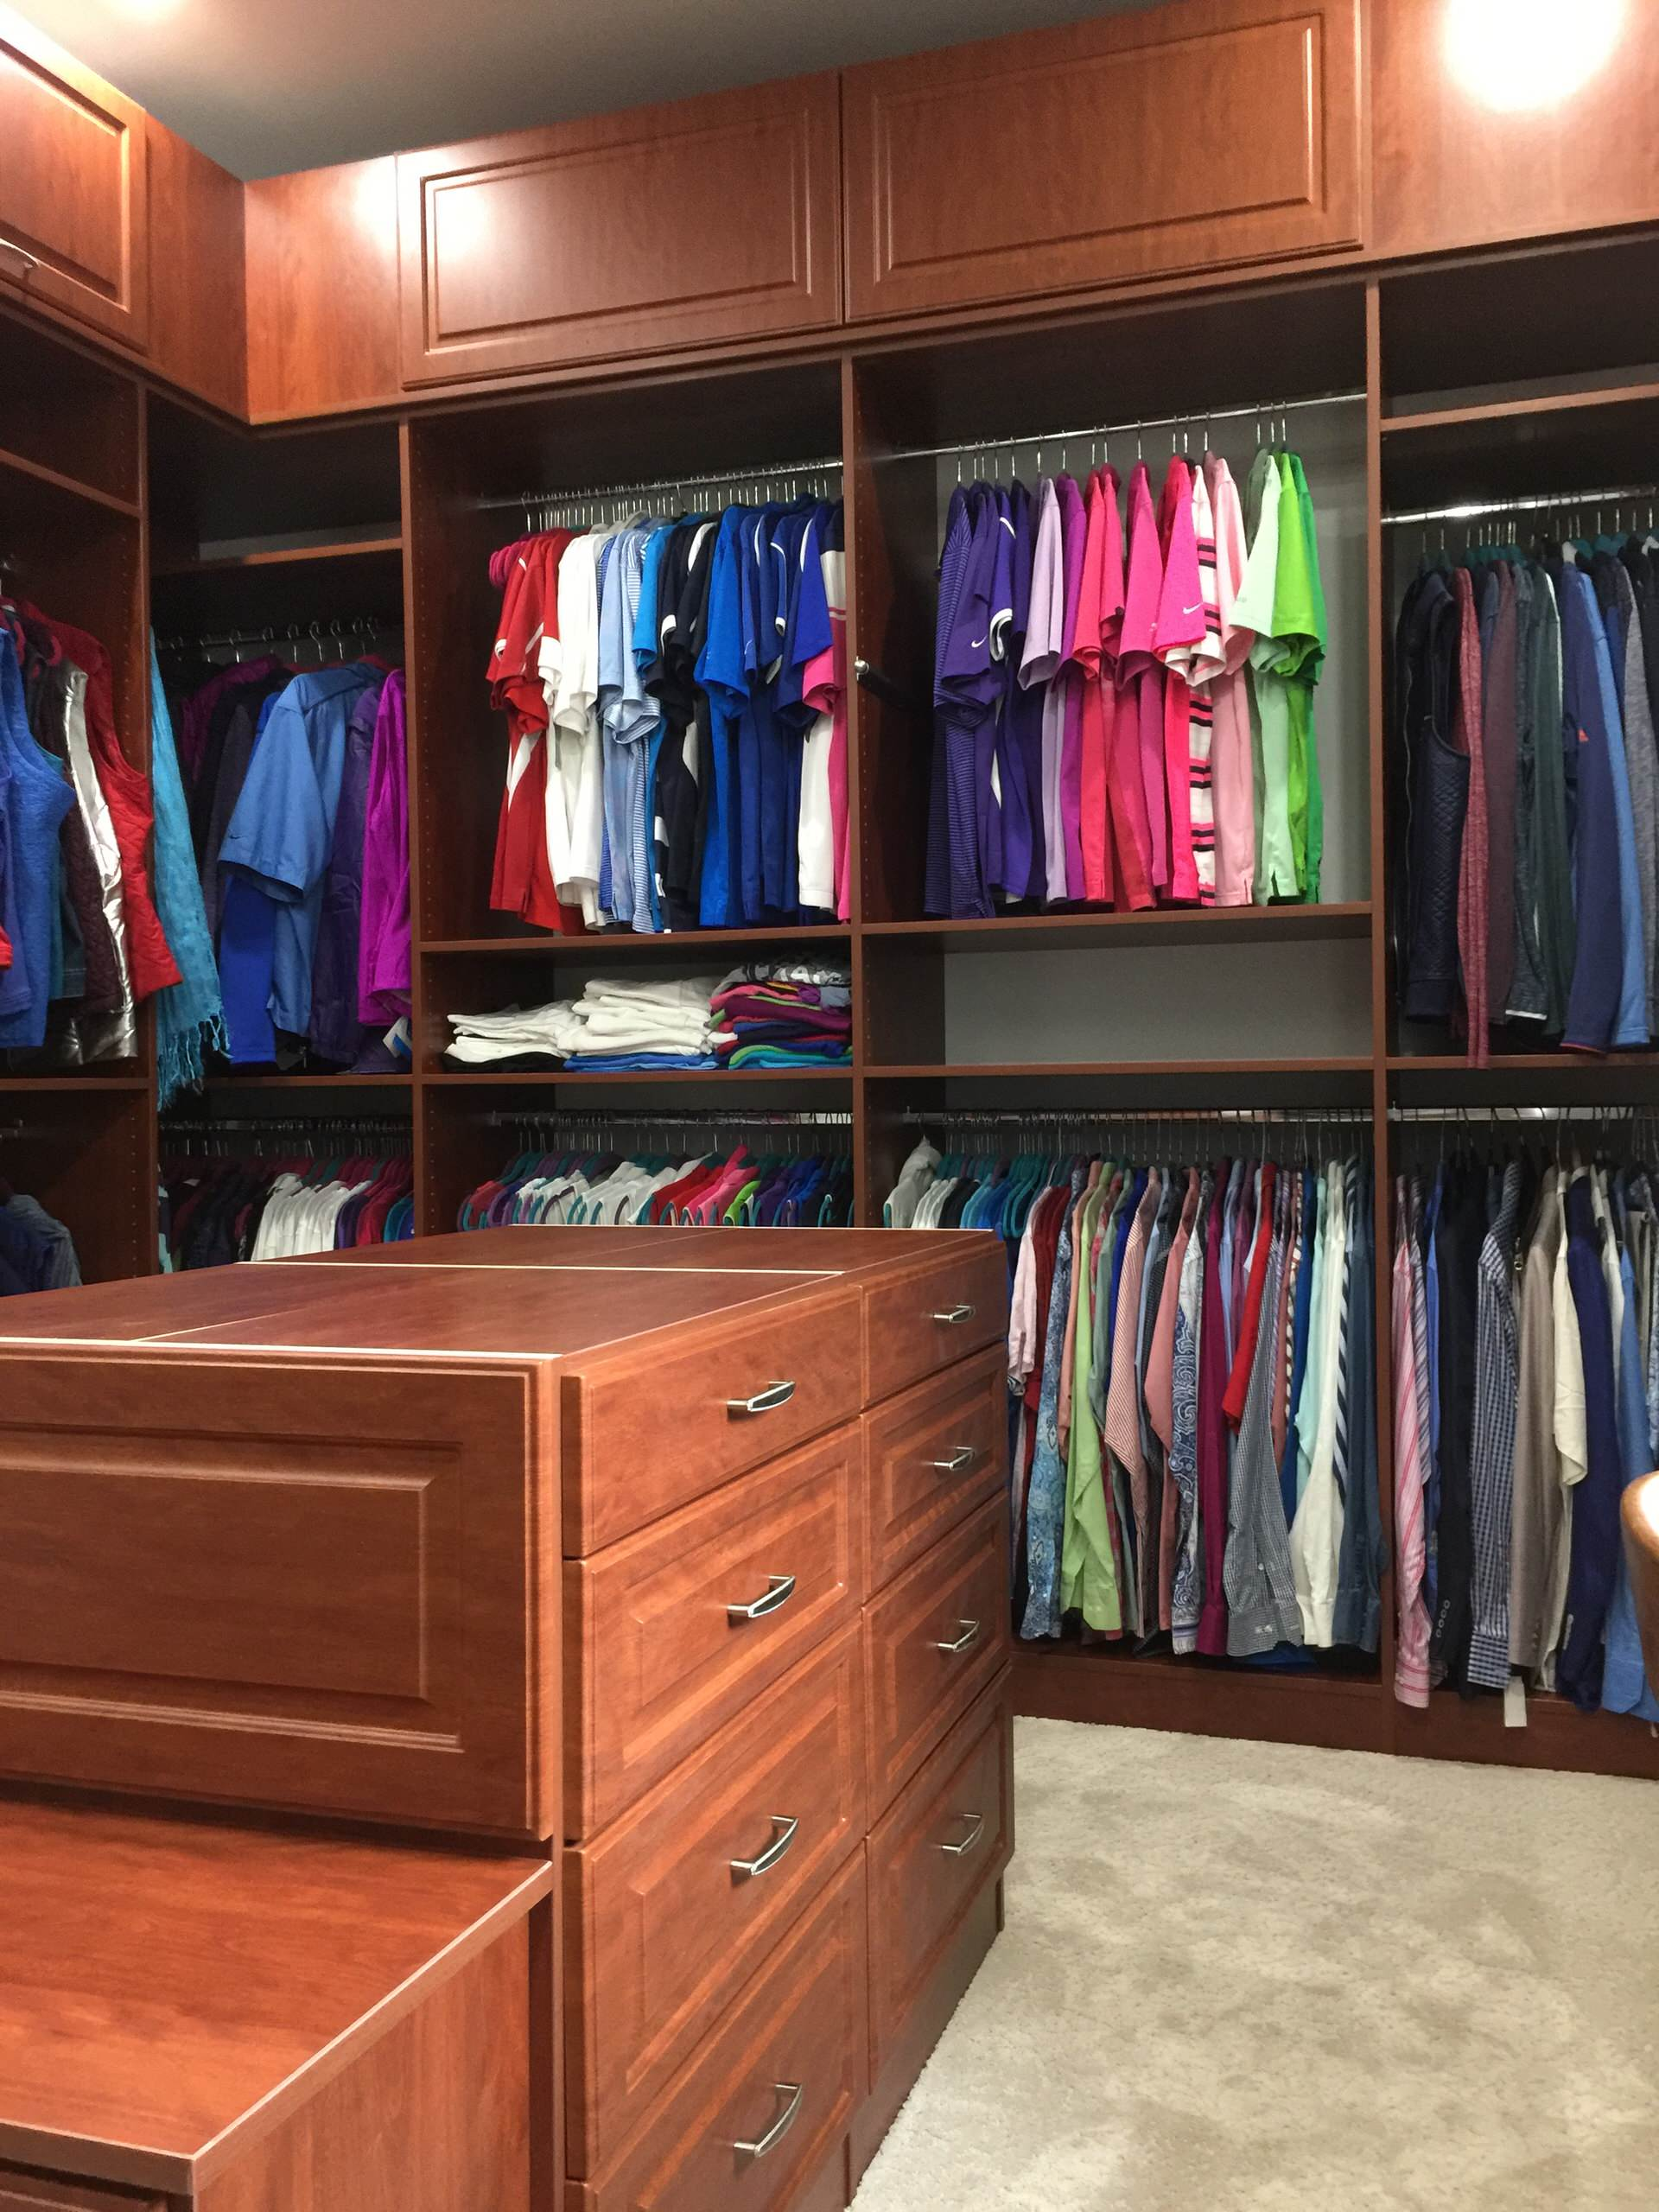 Large Walk-in Closet and Laundry Room in Balsam, NC